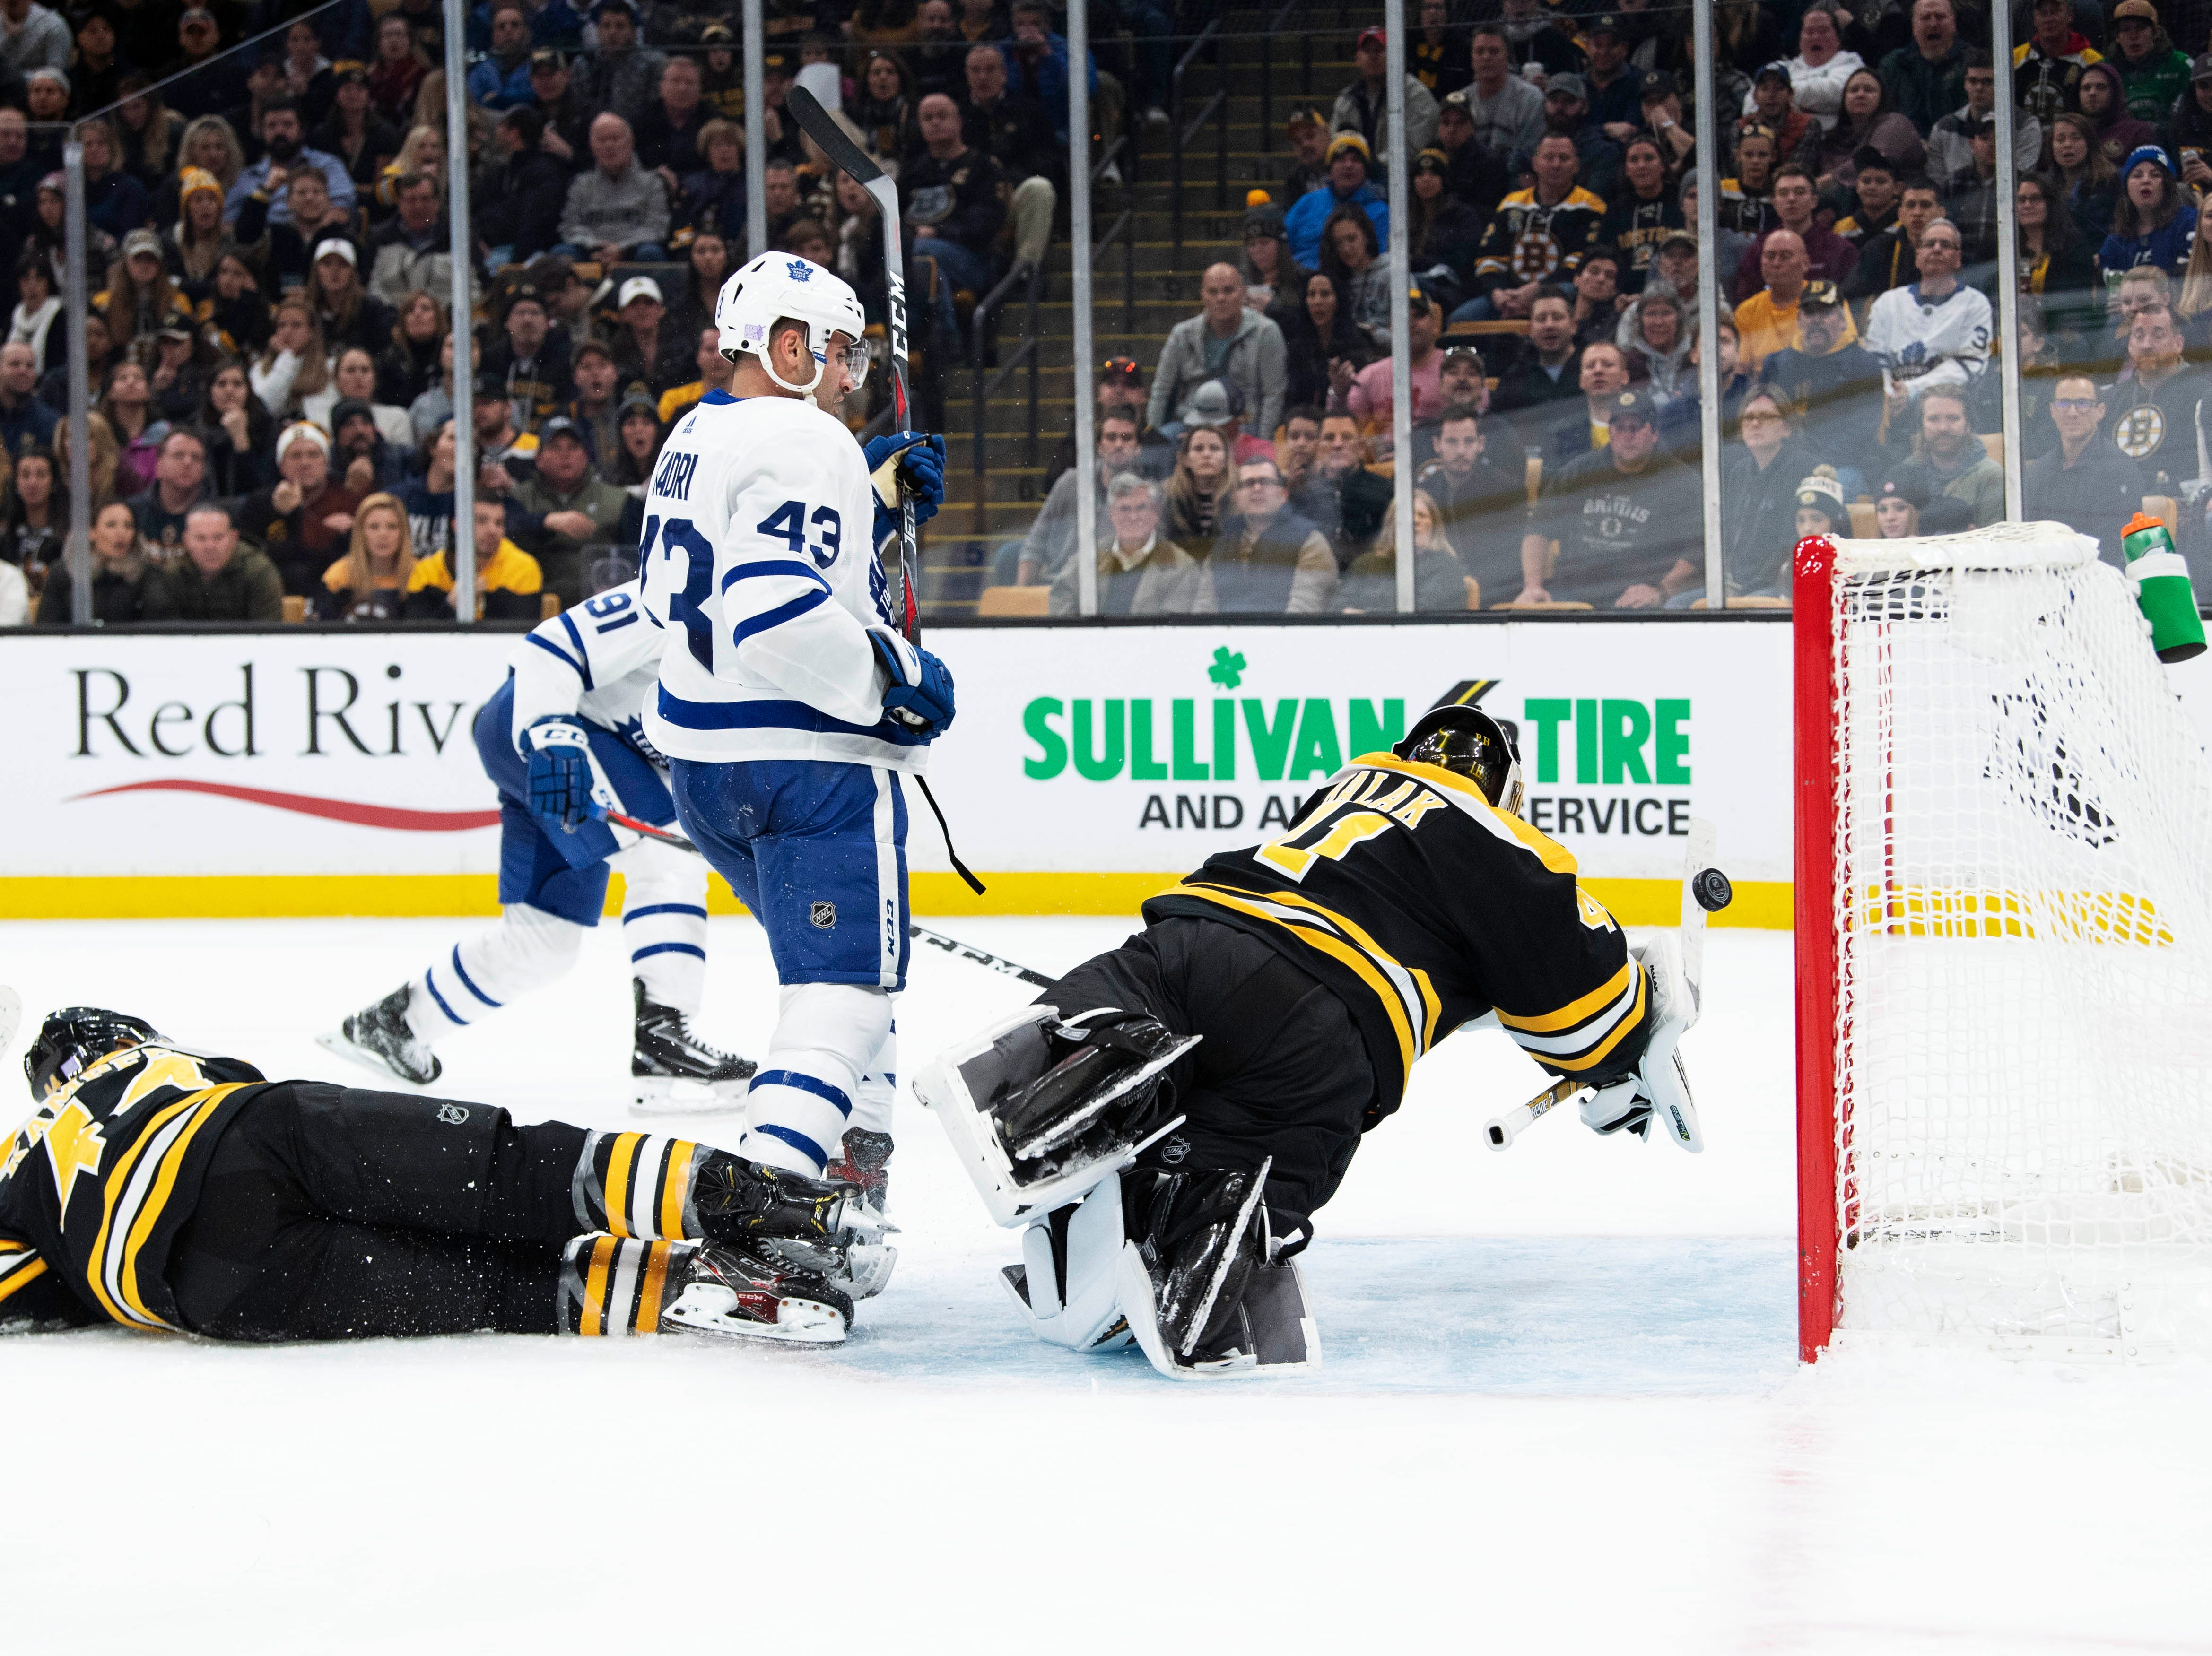 Nov. 10: Toronto Maple Leafs forward John Tavares (not pictured) scores against the Boston Bruins in the second period at TD Garden.